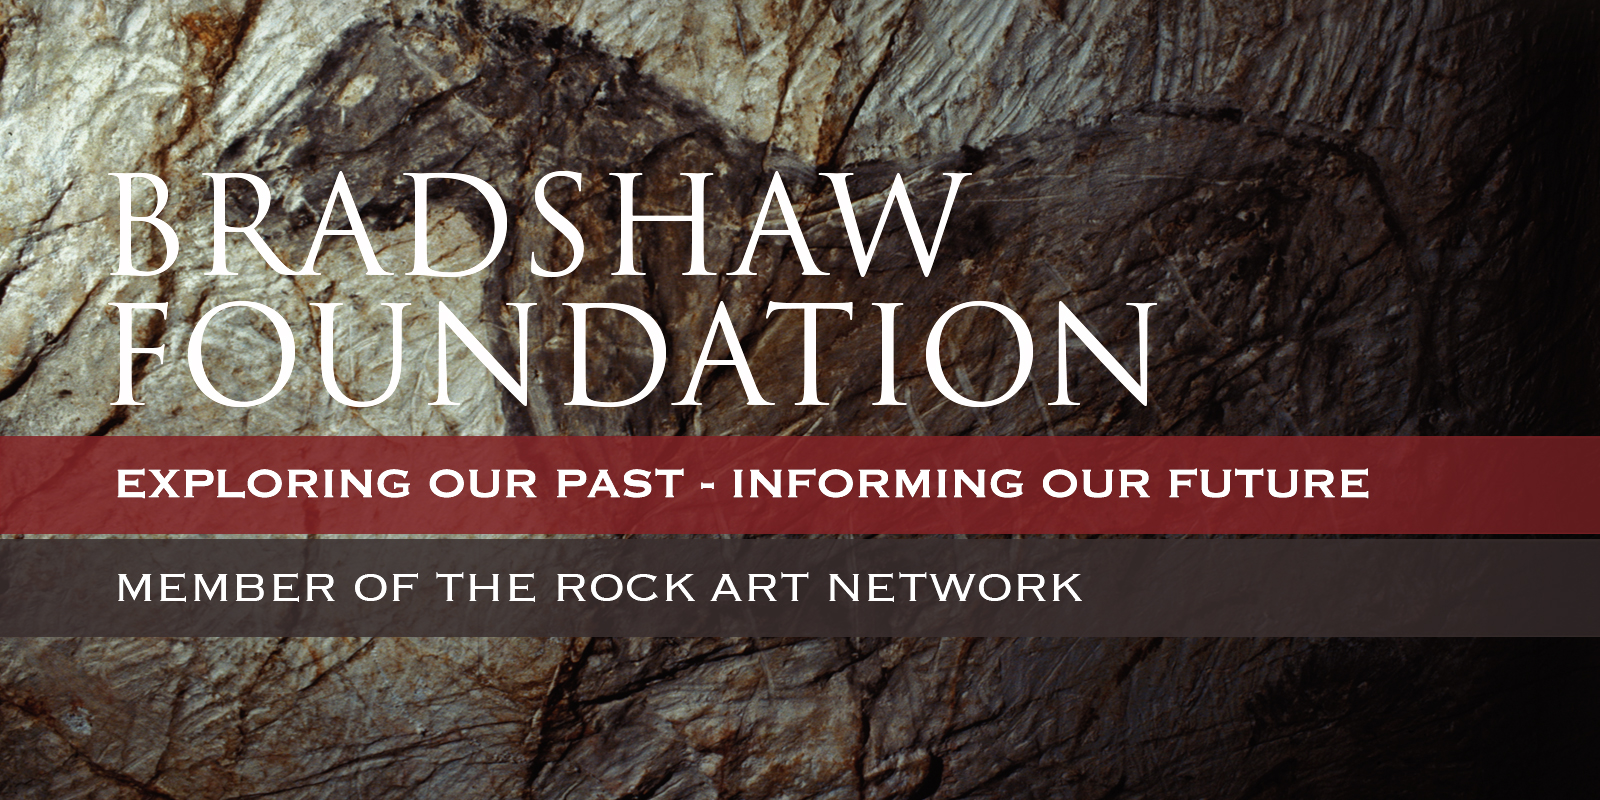 Bradshaw Foundation